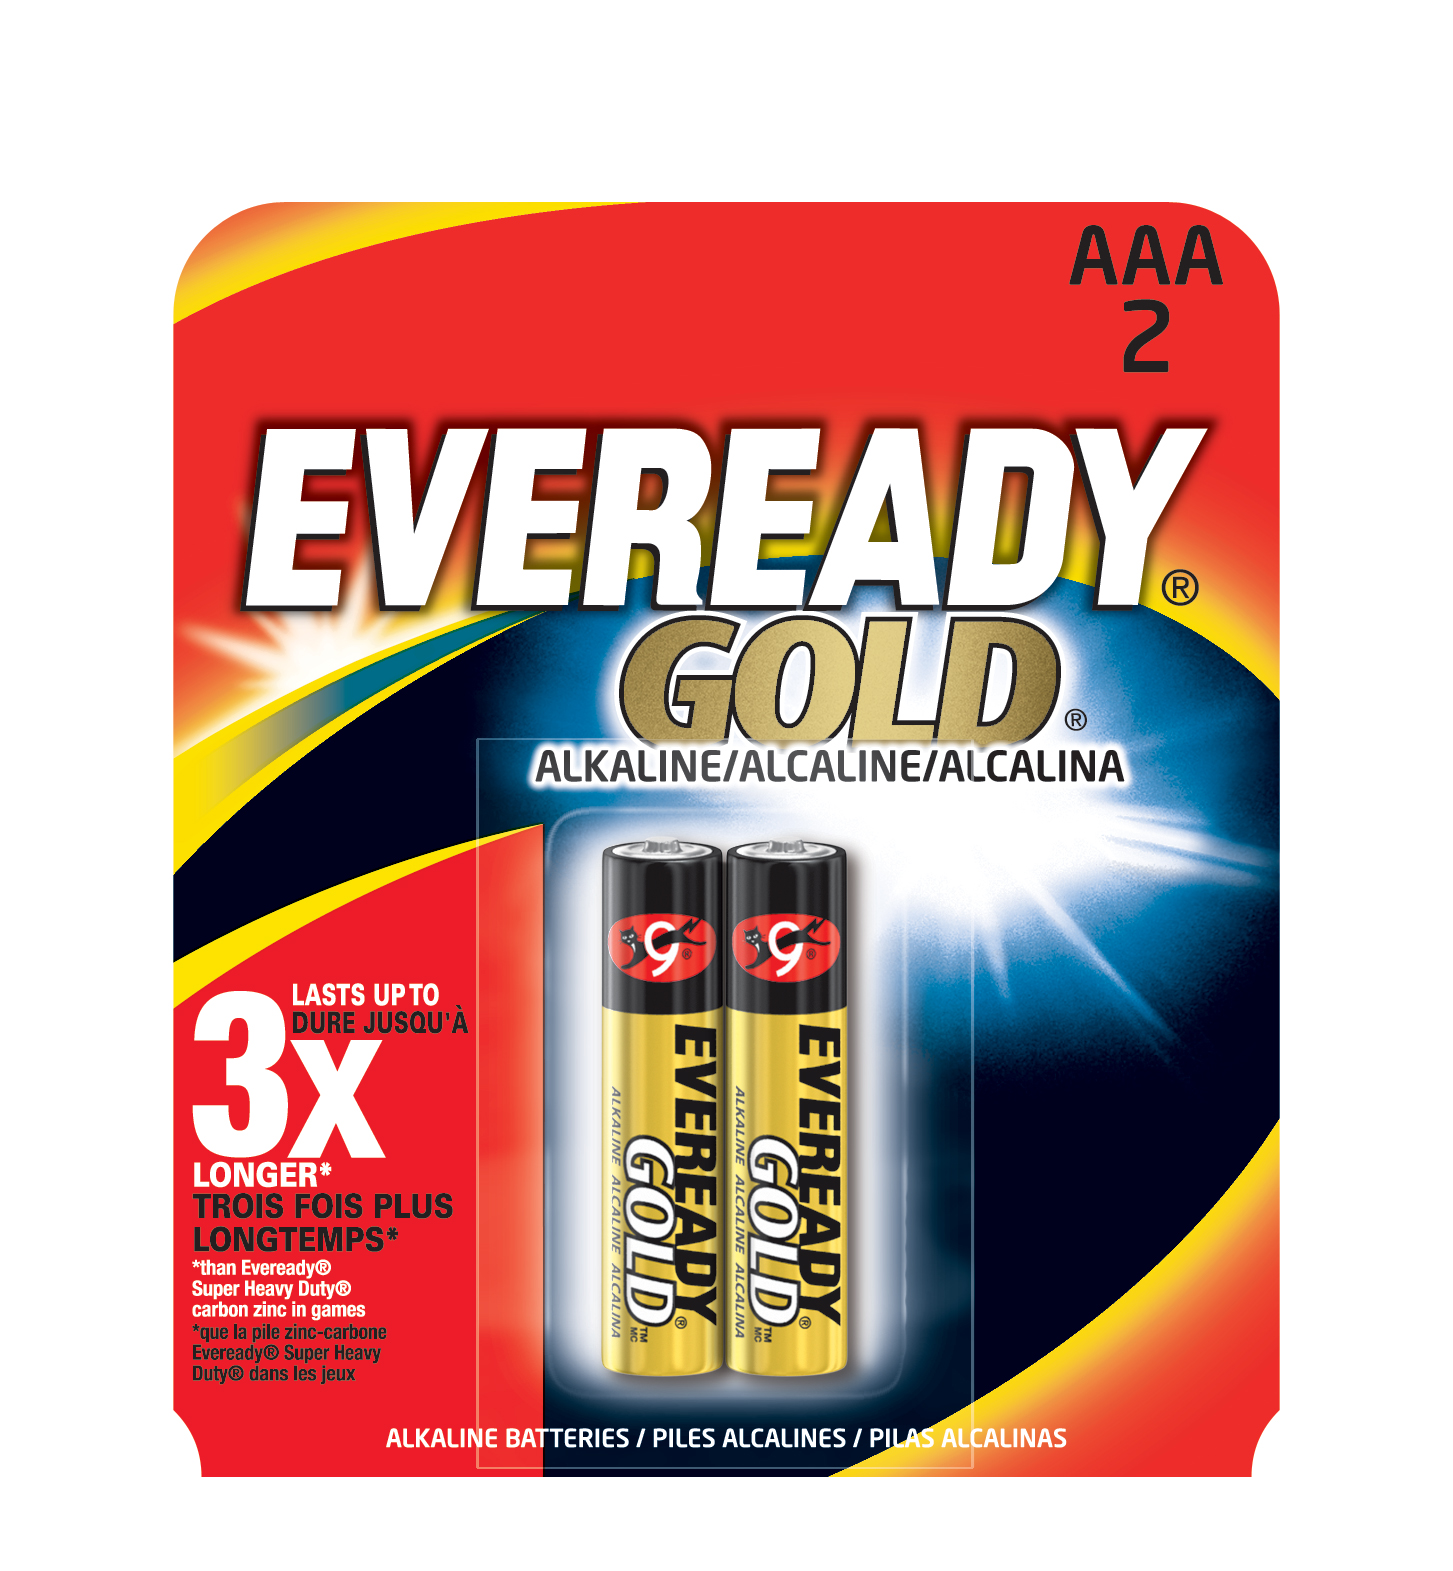 Eveready Gold AAA Batteries